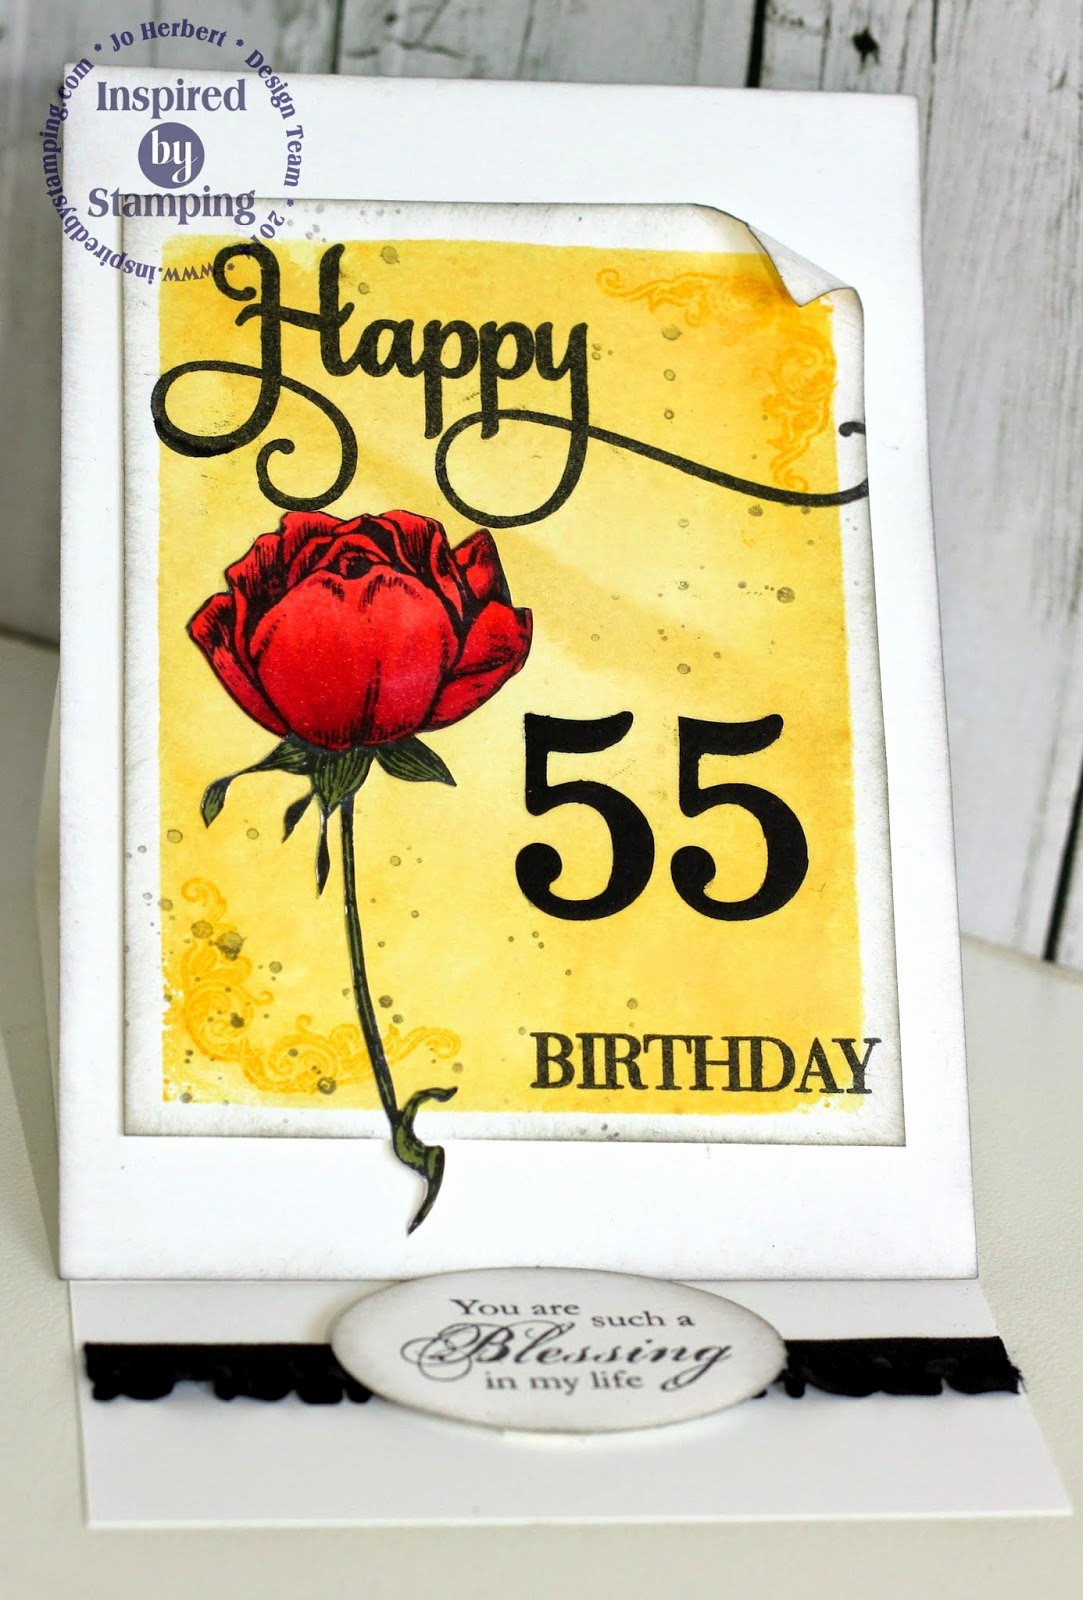 Happy 55th Birthday Images New Show Me the Love Happy 55th Birthday Inspired by Stamping